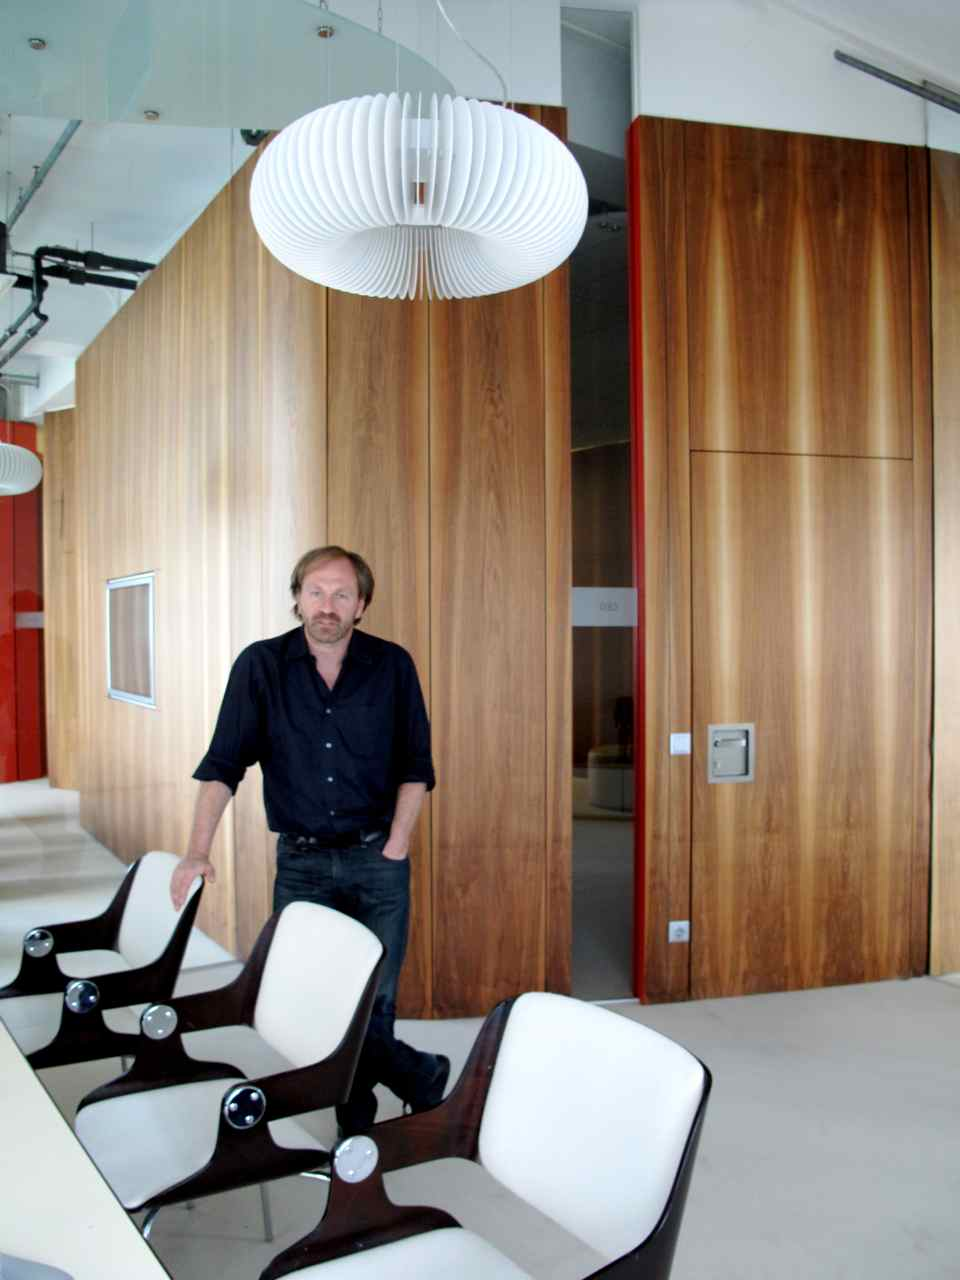 Design Hotels, Claus Sendlinger